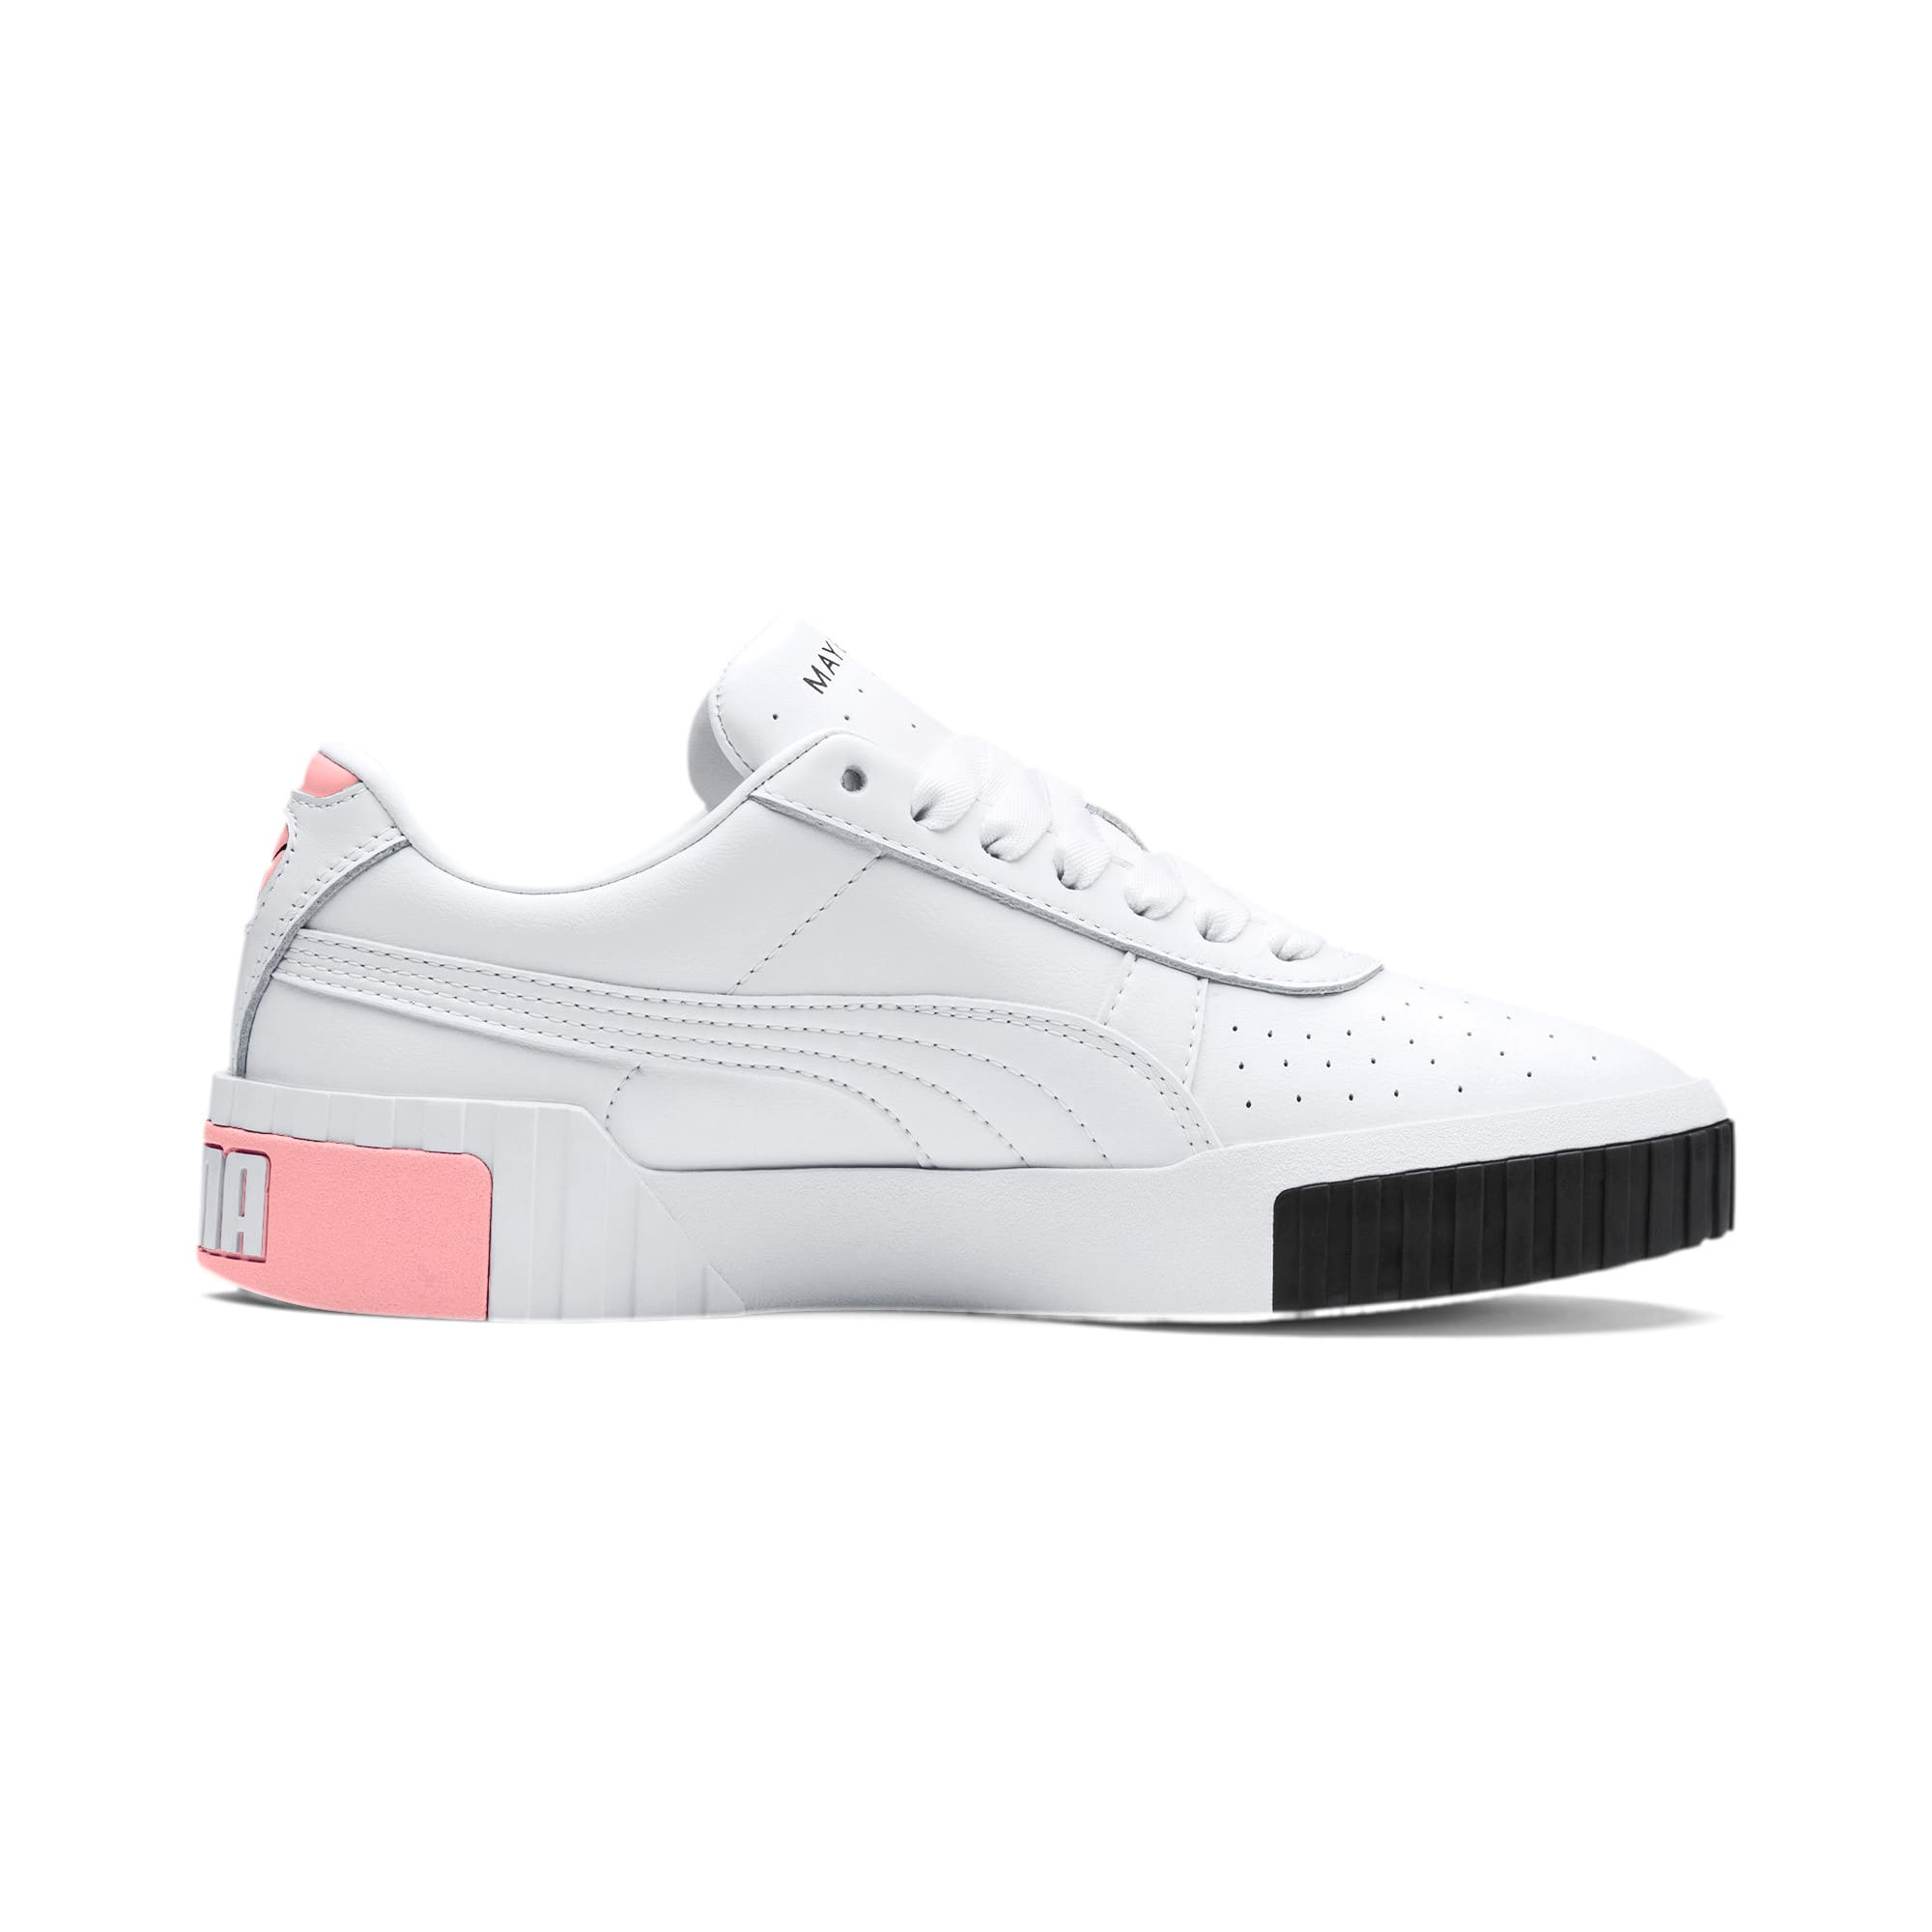 Thumbnail 5 of PUMA x MAYBELLINE Cali Women's Trainers, Puma White-Puma Black, medium